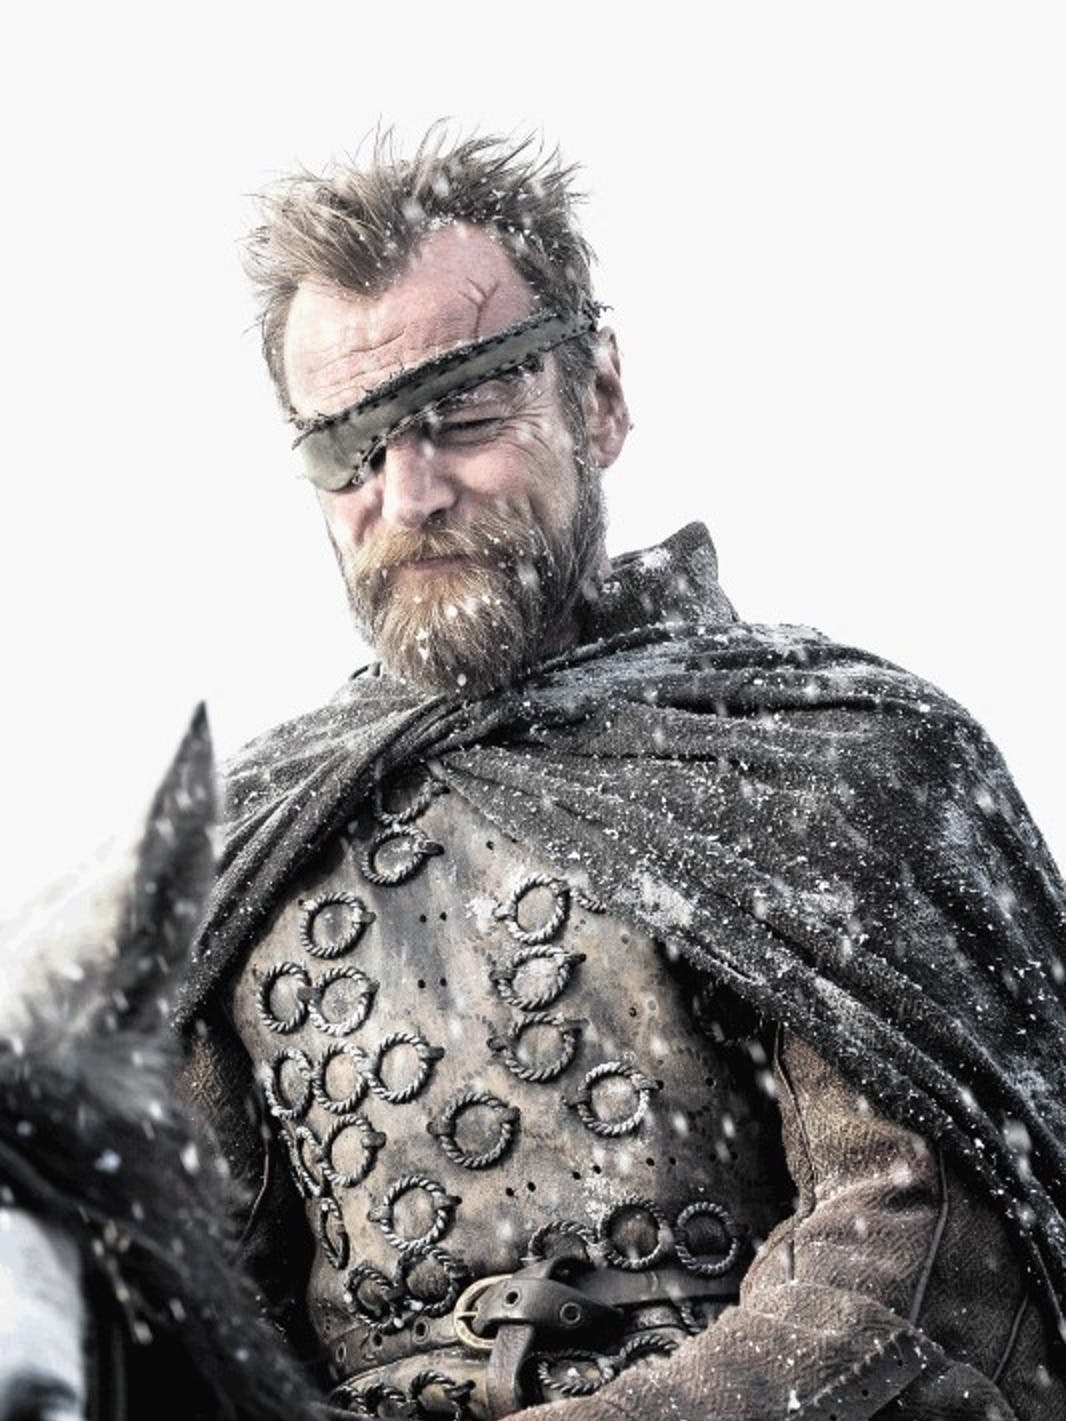 Who Every 'Avengers' Character Is in 'Game of Thrones' | Inverse